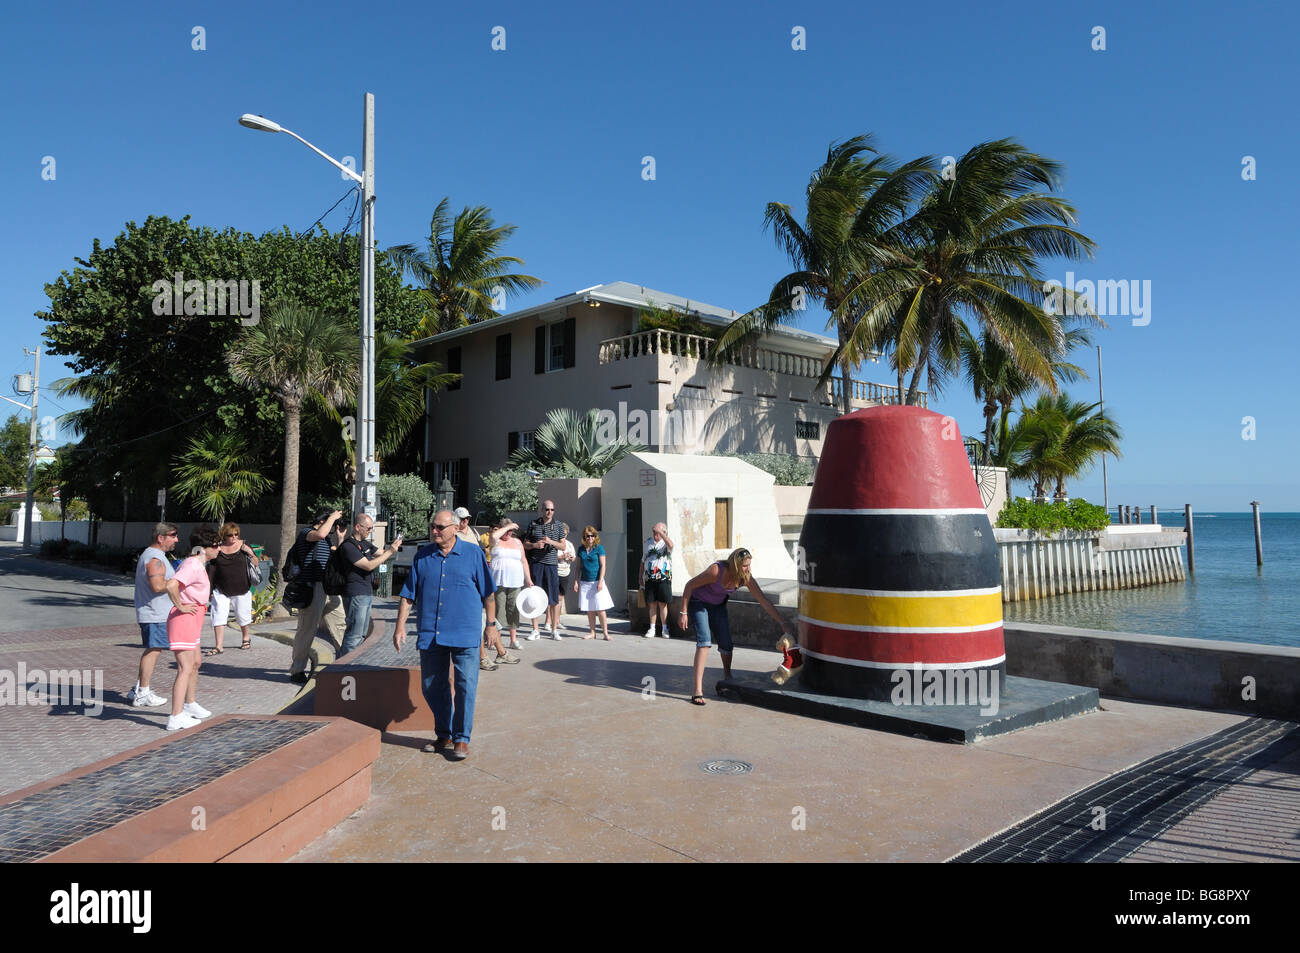 Southernmost point in continental USA, Key West, Florida Keys Stock Photo